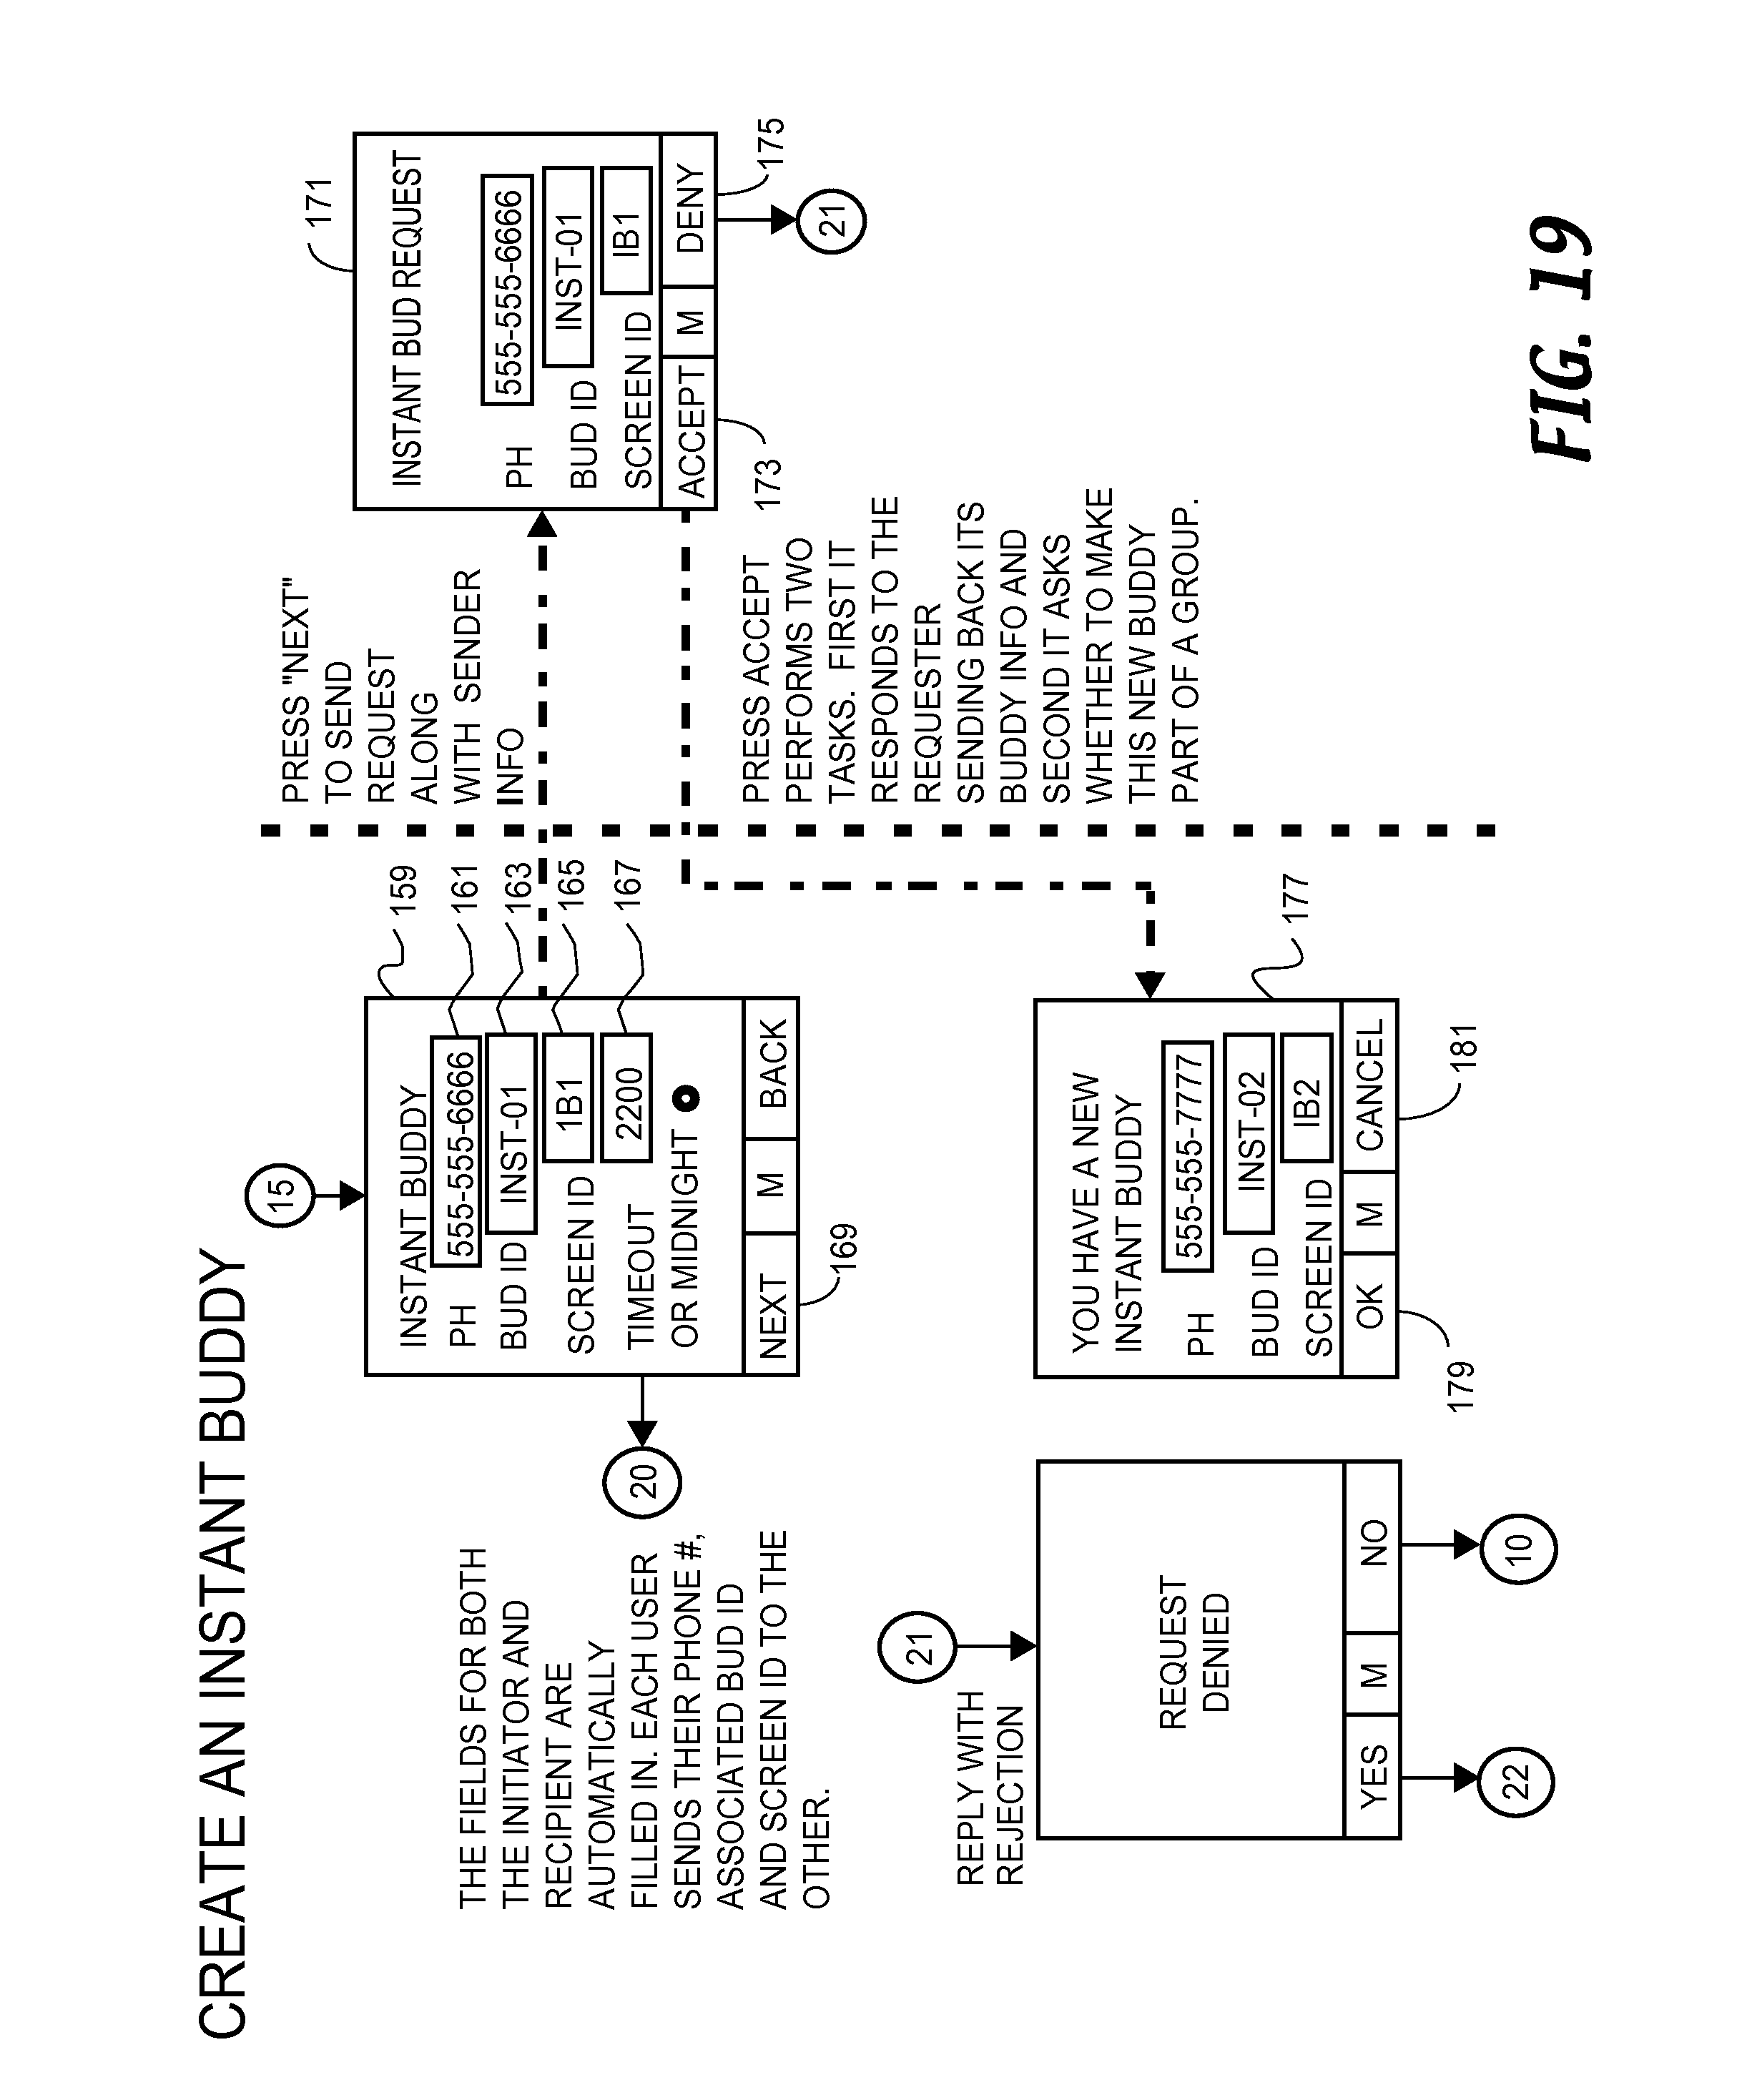 Us9615204b1 techniques for communication within closed groups of us9615204b1 techniques for communication within closed groups of mobile devices google patents fandeluxe Choice Image